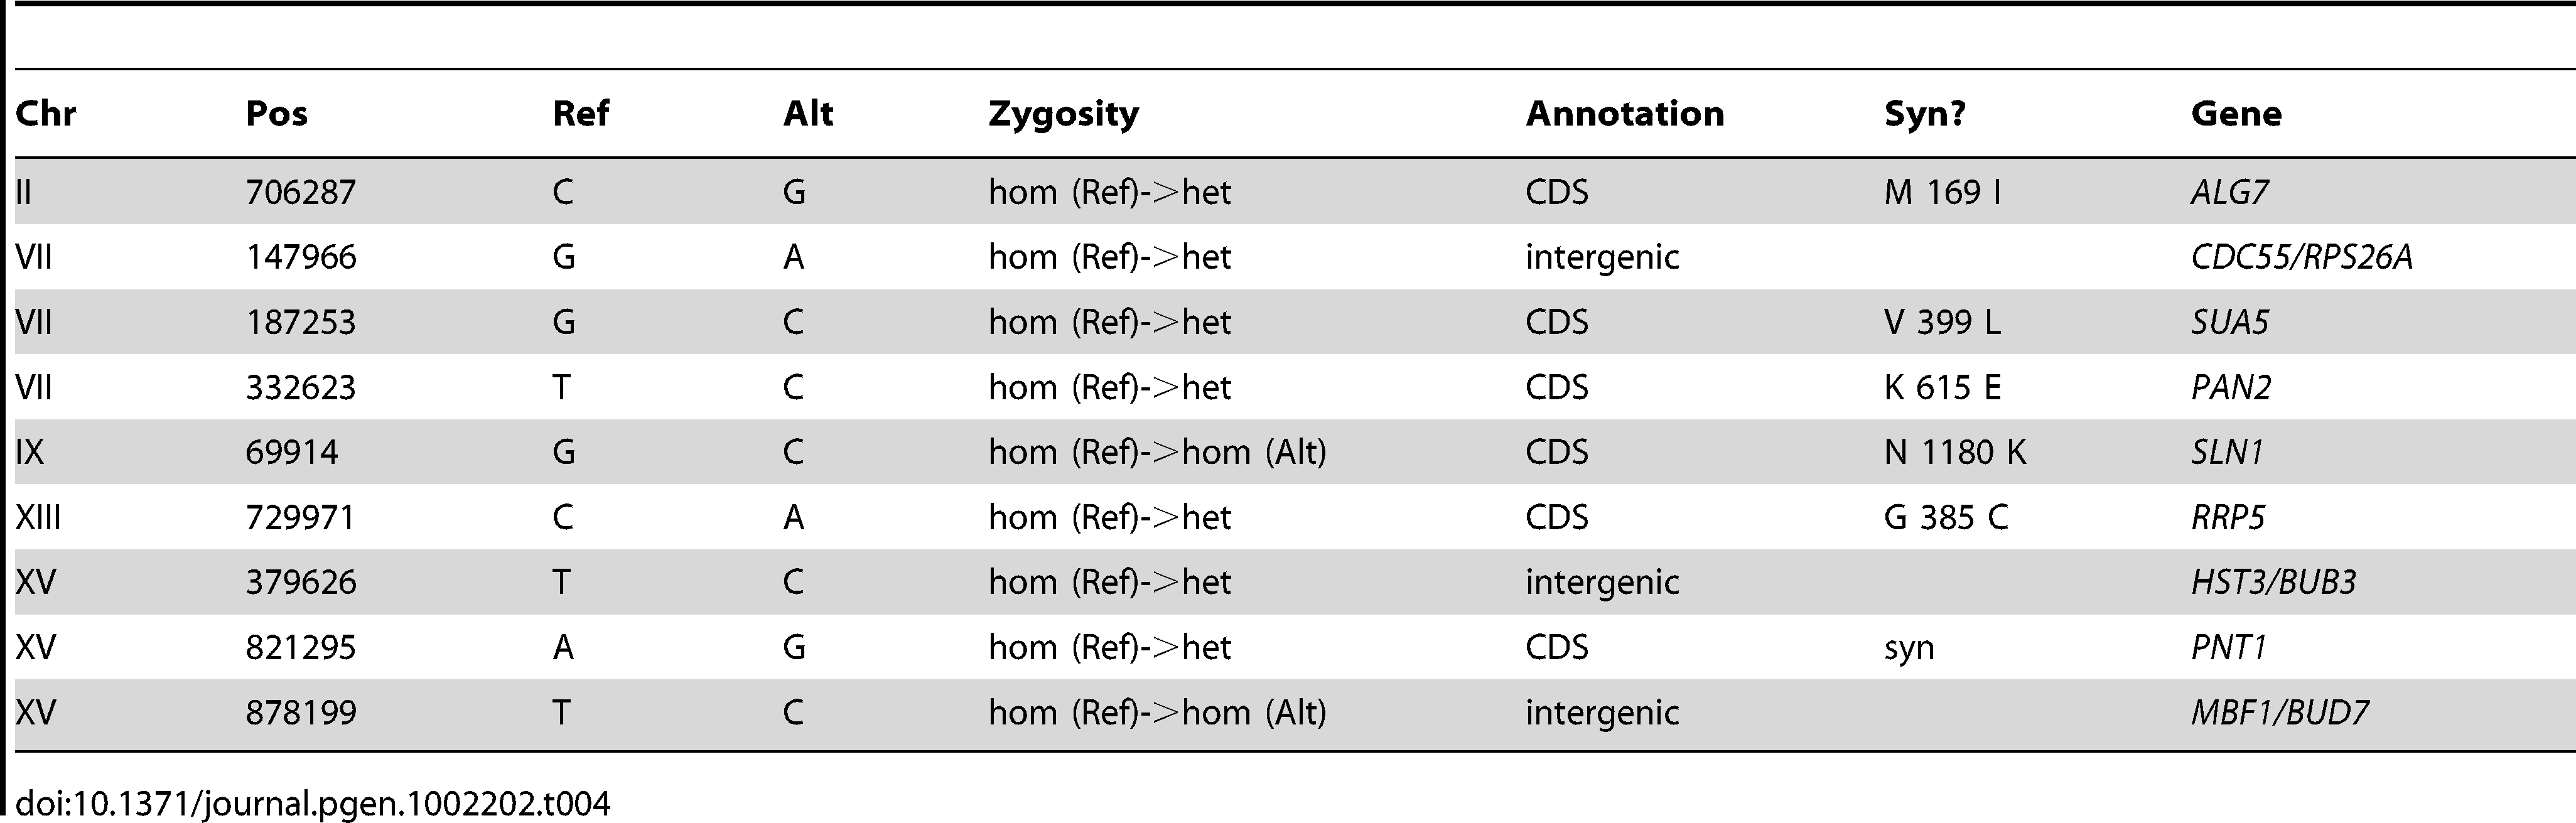 Summary of Substitutions and Indels for E4 (301 generations).